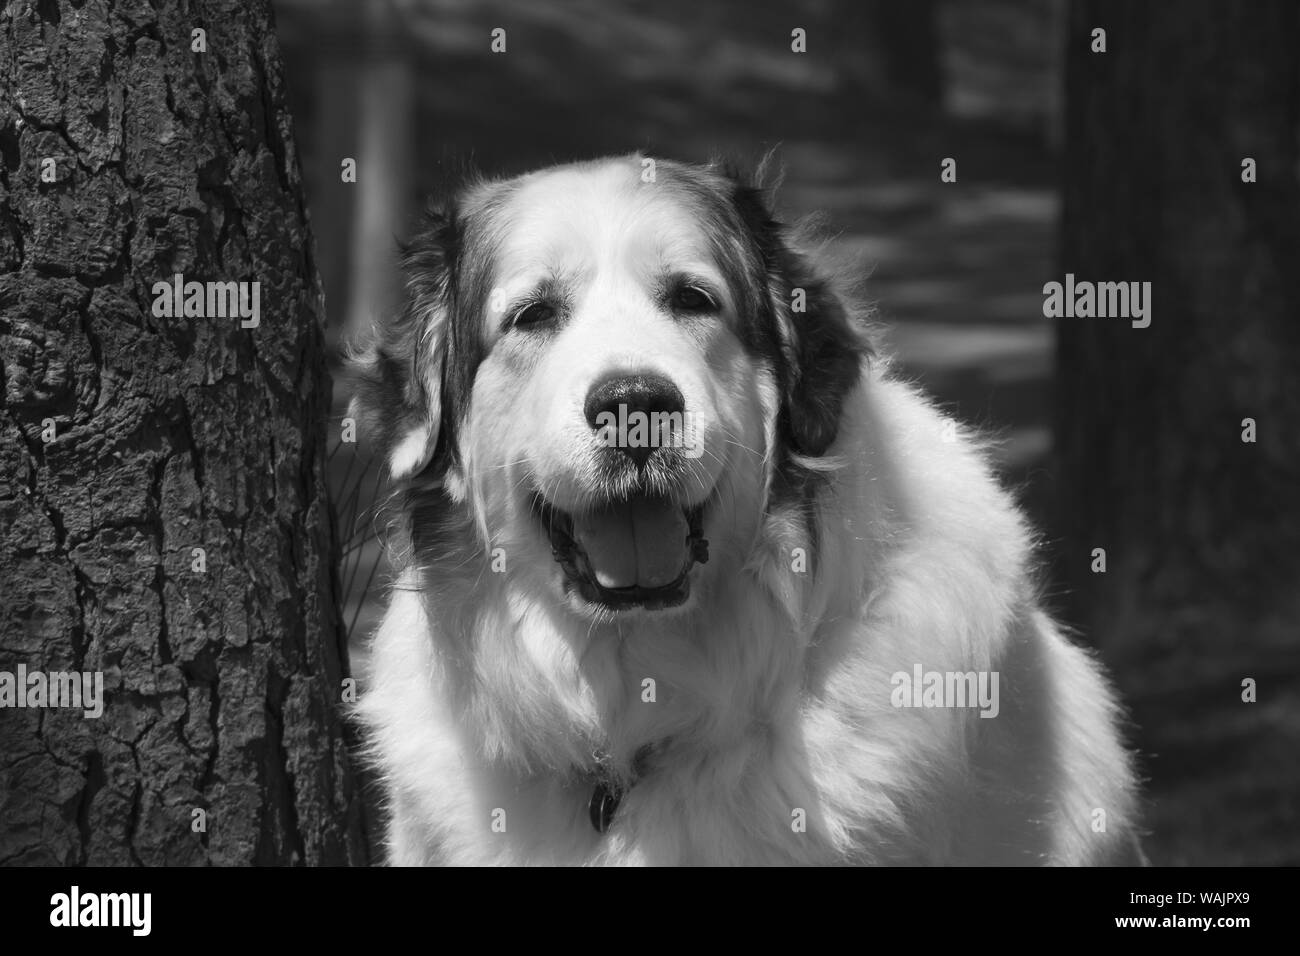 Great Pyrenees at the park. Stock Photo